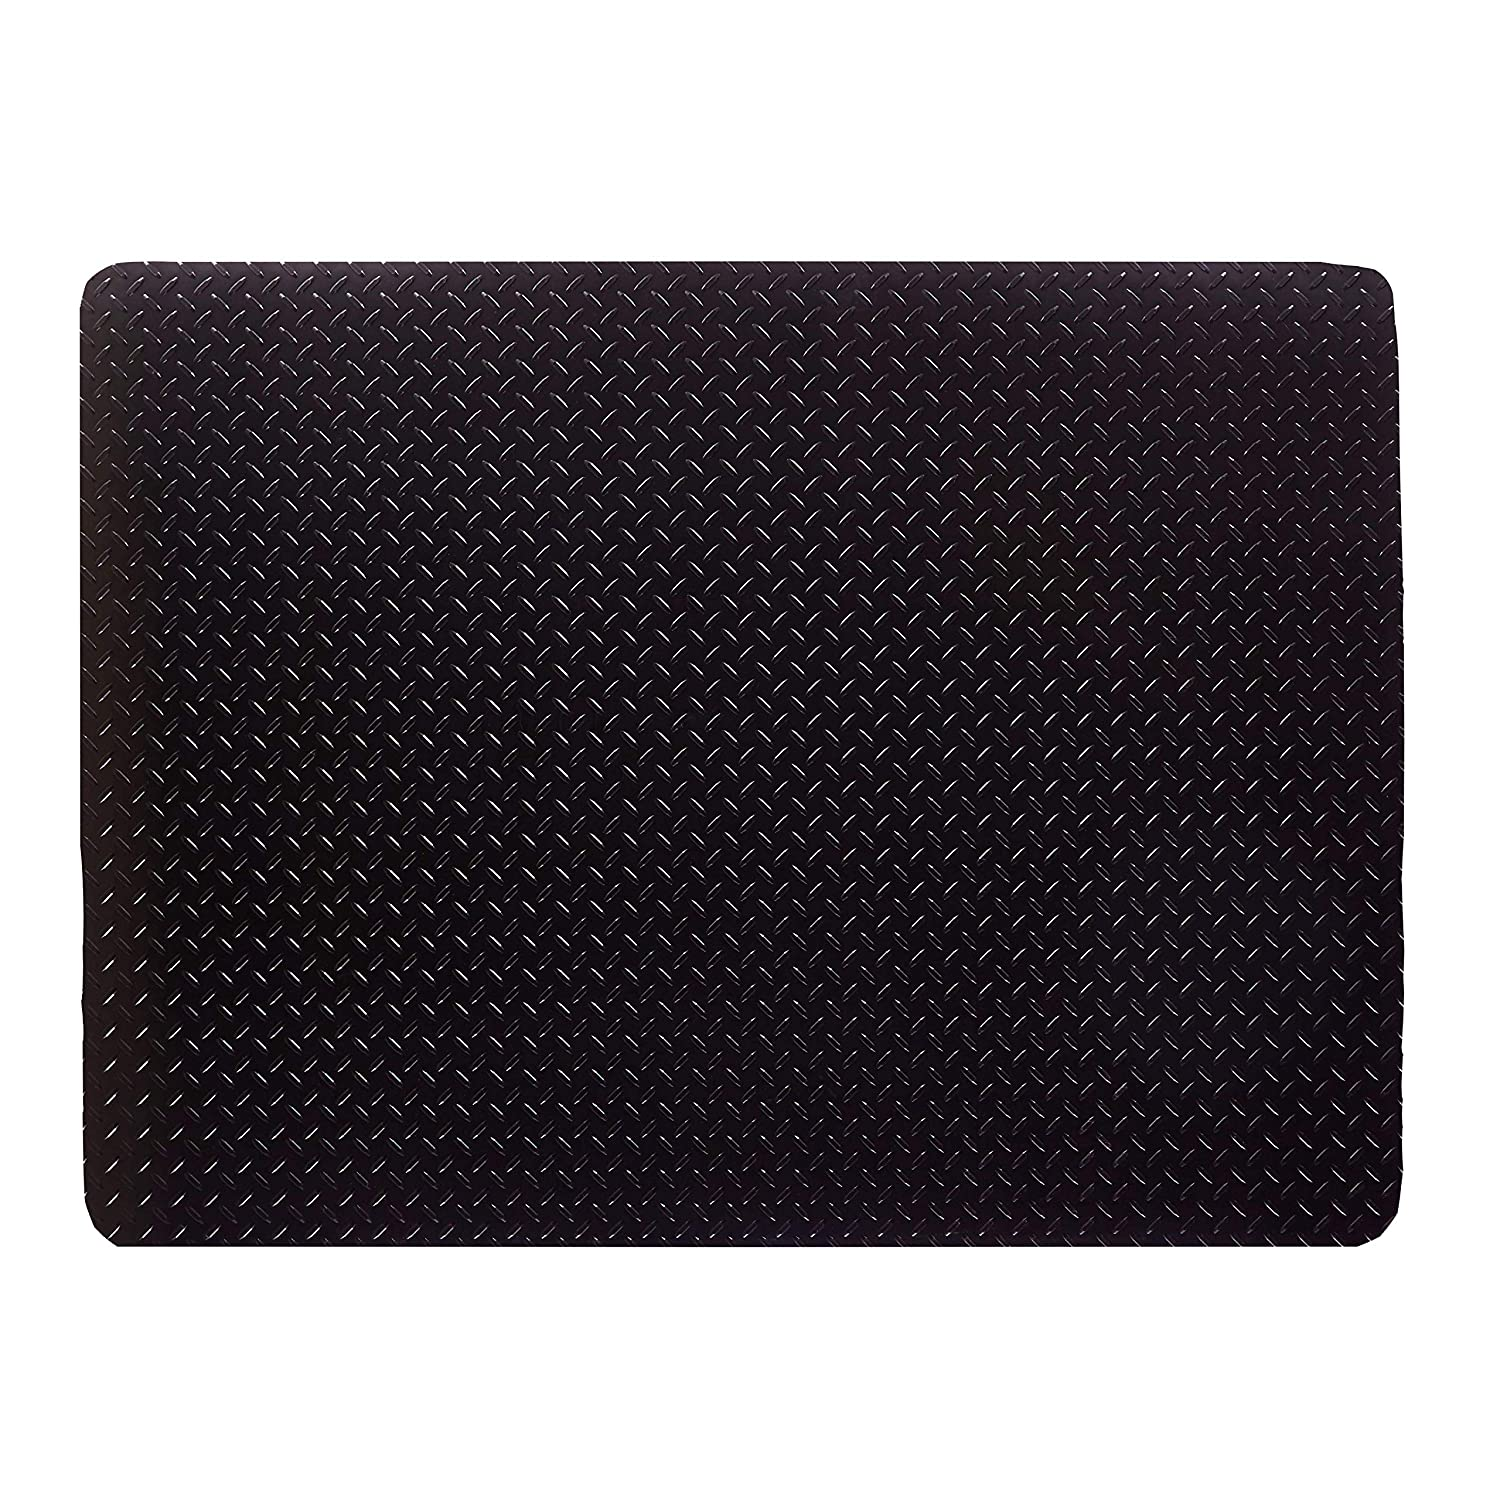 Resilia - Grill and Garage Protective Mat - Decorative Embossed Diamond Plate Pattern - Black, (3 Feet x 4 Feet)